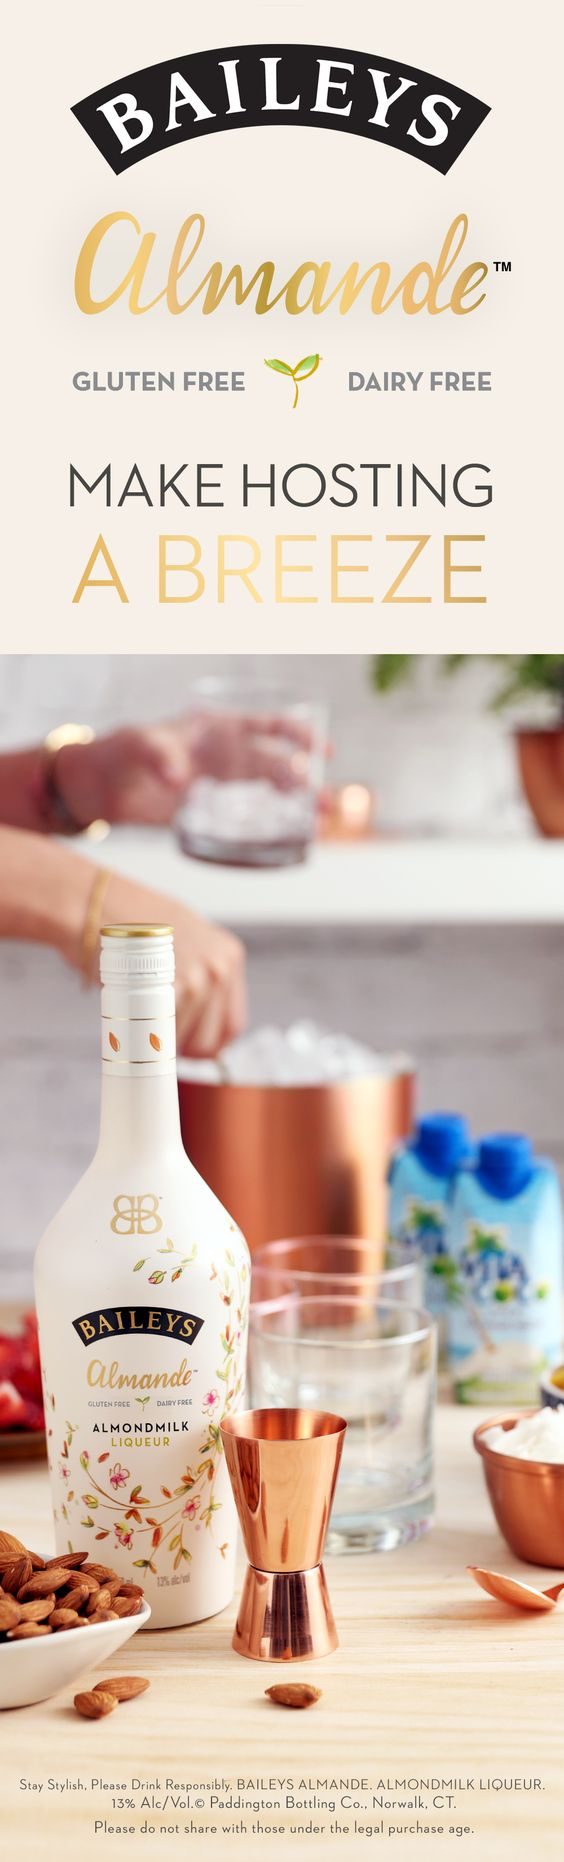 Grab a bottle of new Baileys Almande and make hosting a breeze with a DIY cocktail bar. This dairy free, gluten free, and vegan almondmilk liqueur is perfect for an outdoor party or sunny weekend brunch. Add in your favorite mixers for custom cocktails, or keep it simple with coconut water.